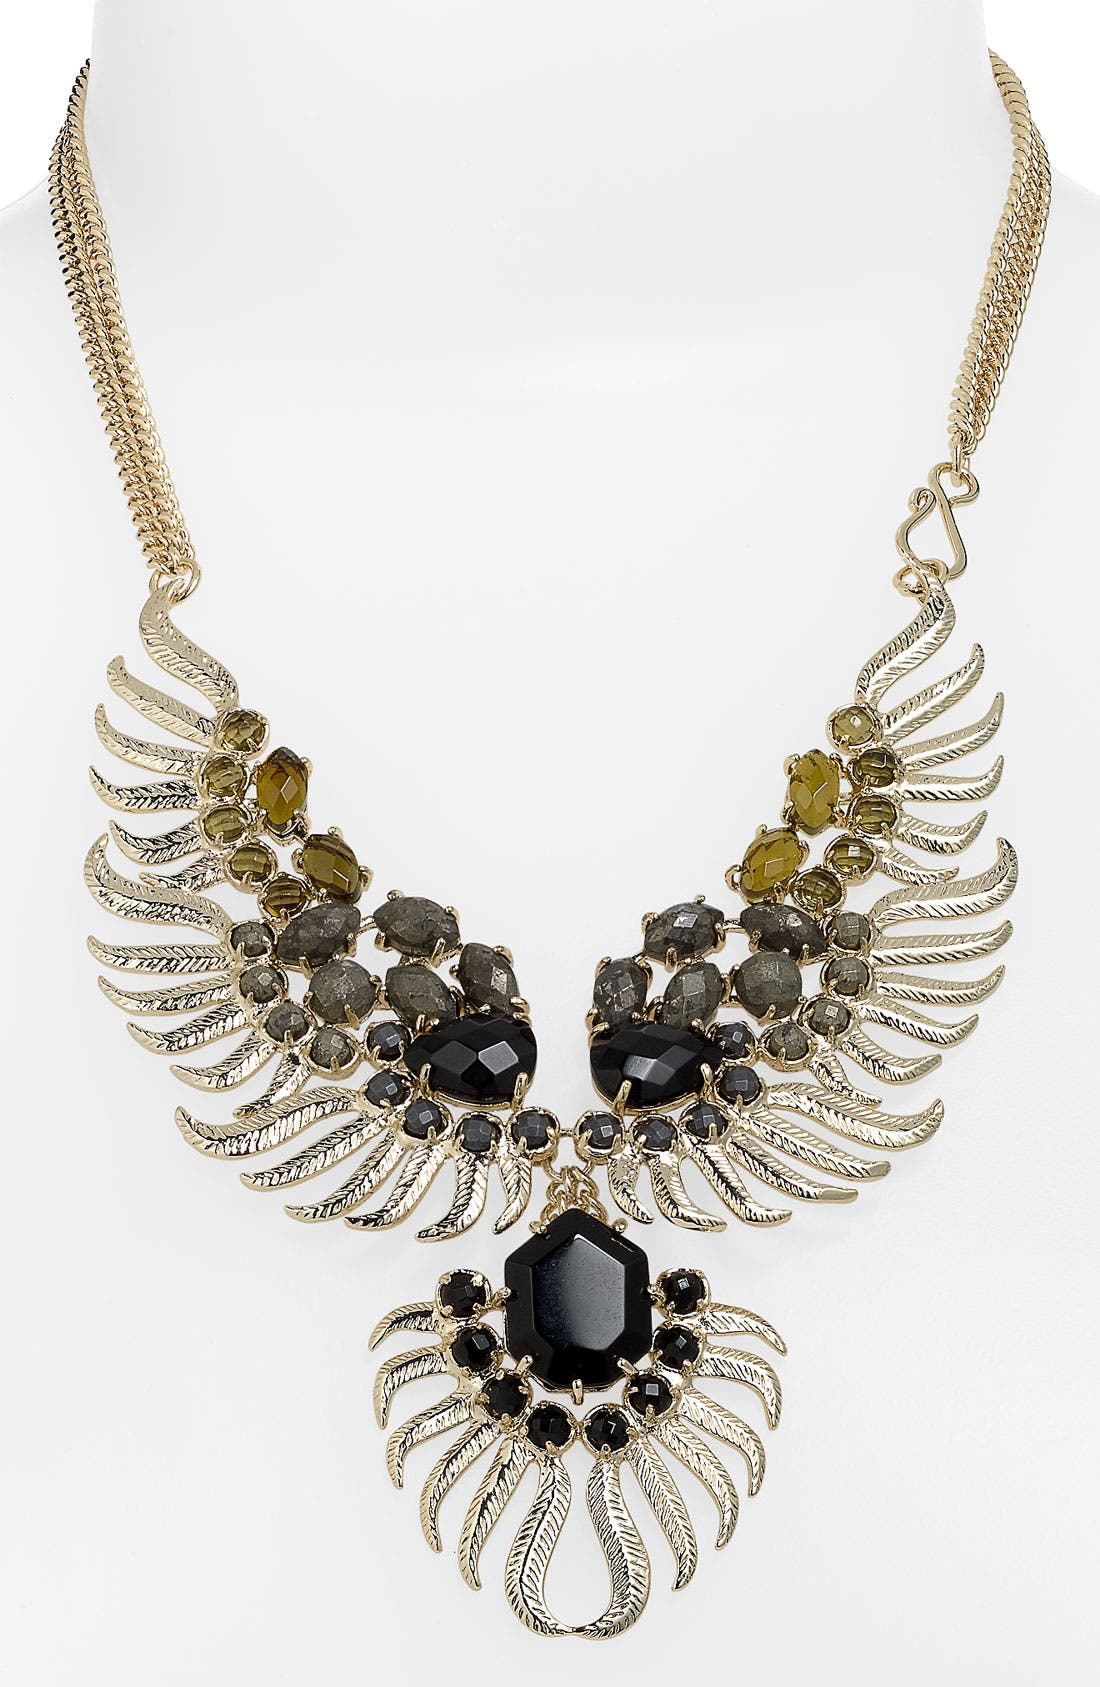 Alternate Image 1 Selected - Kendra Scott 'Fenton' Statement Necklace